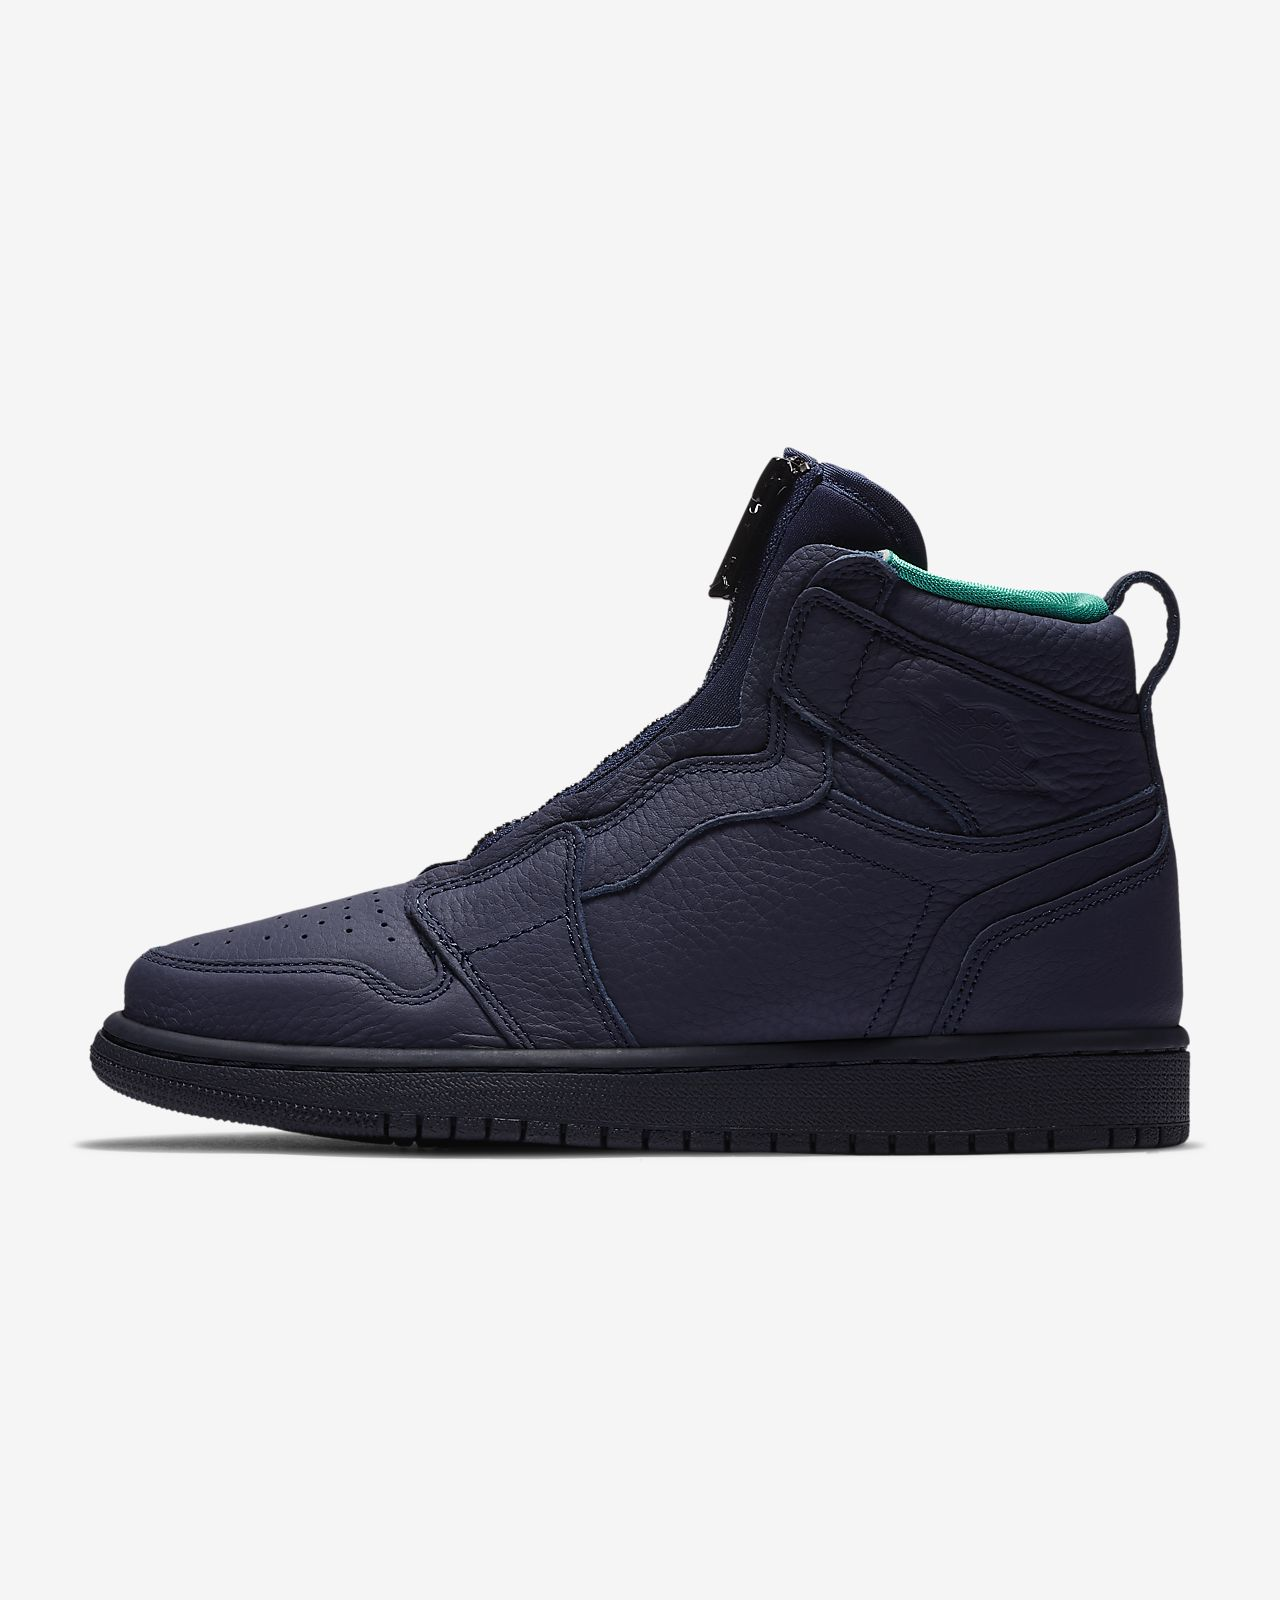 sports shoes e6e27 45ab1 ... where to buy air jordan 1 high zip womens shoe 97547 afc9b